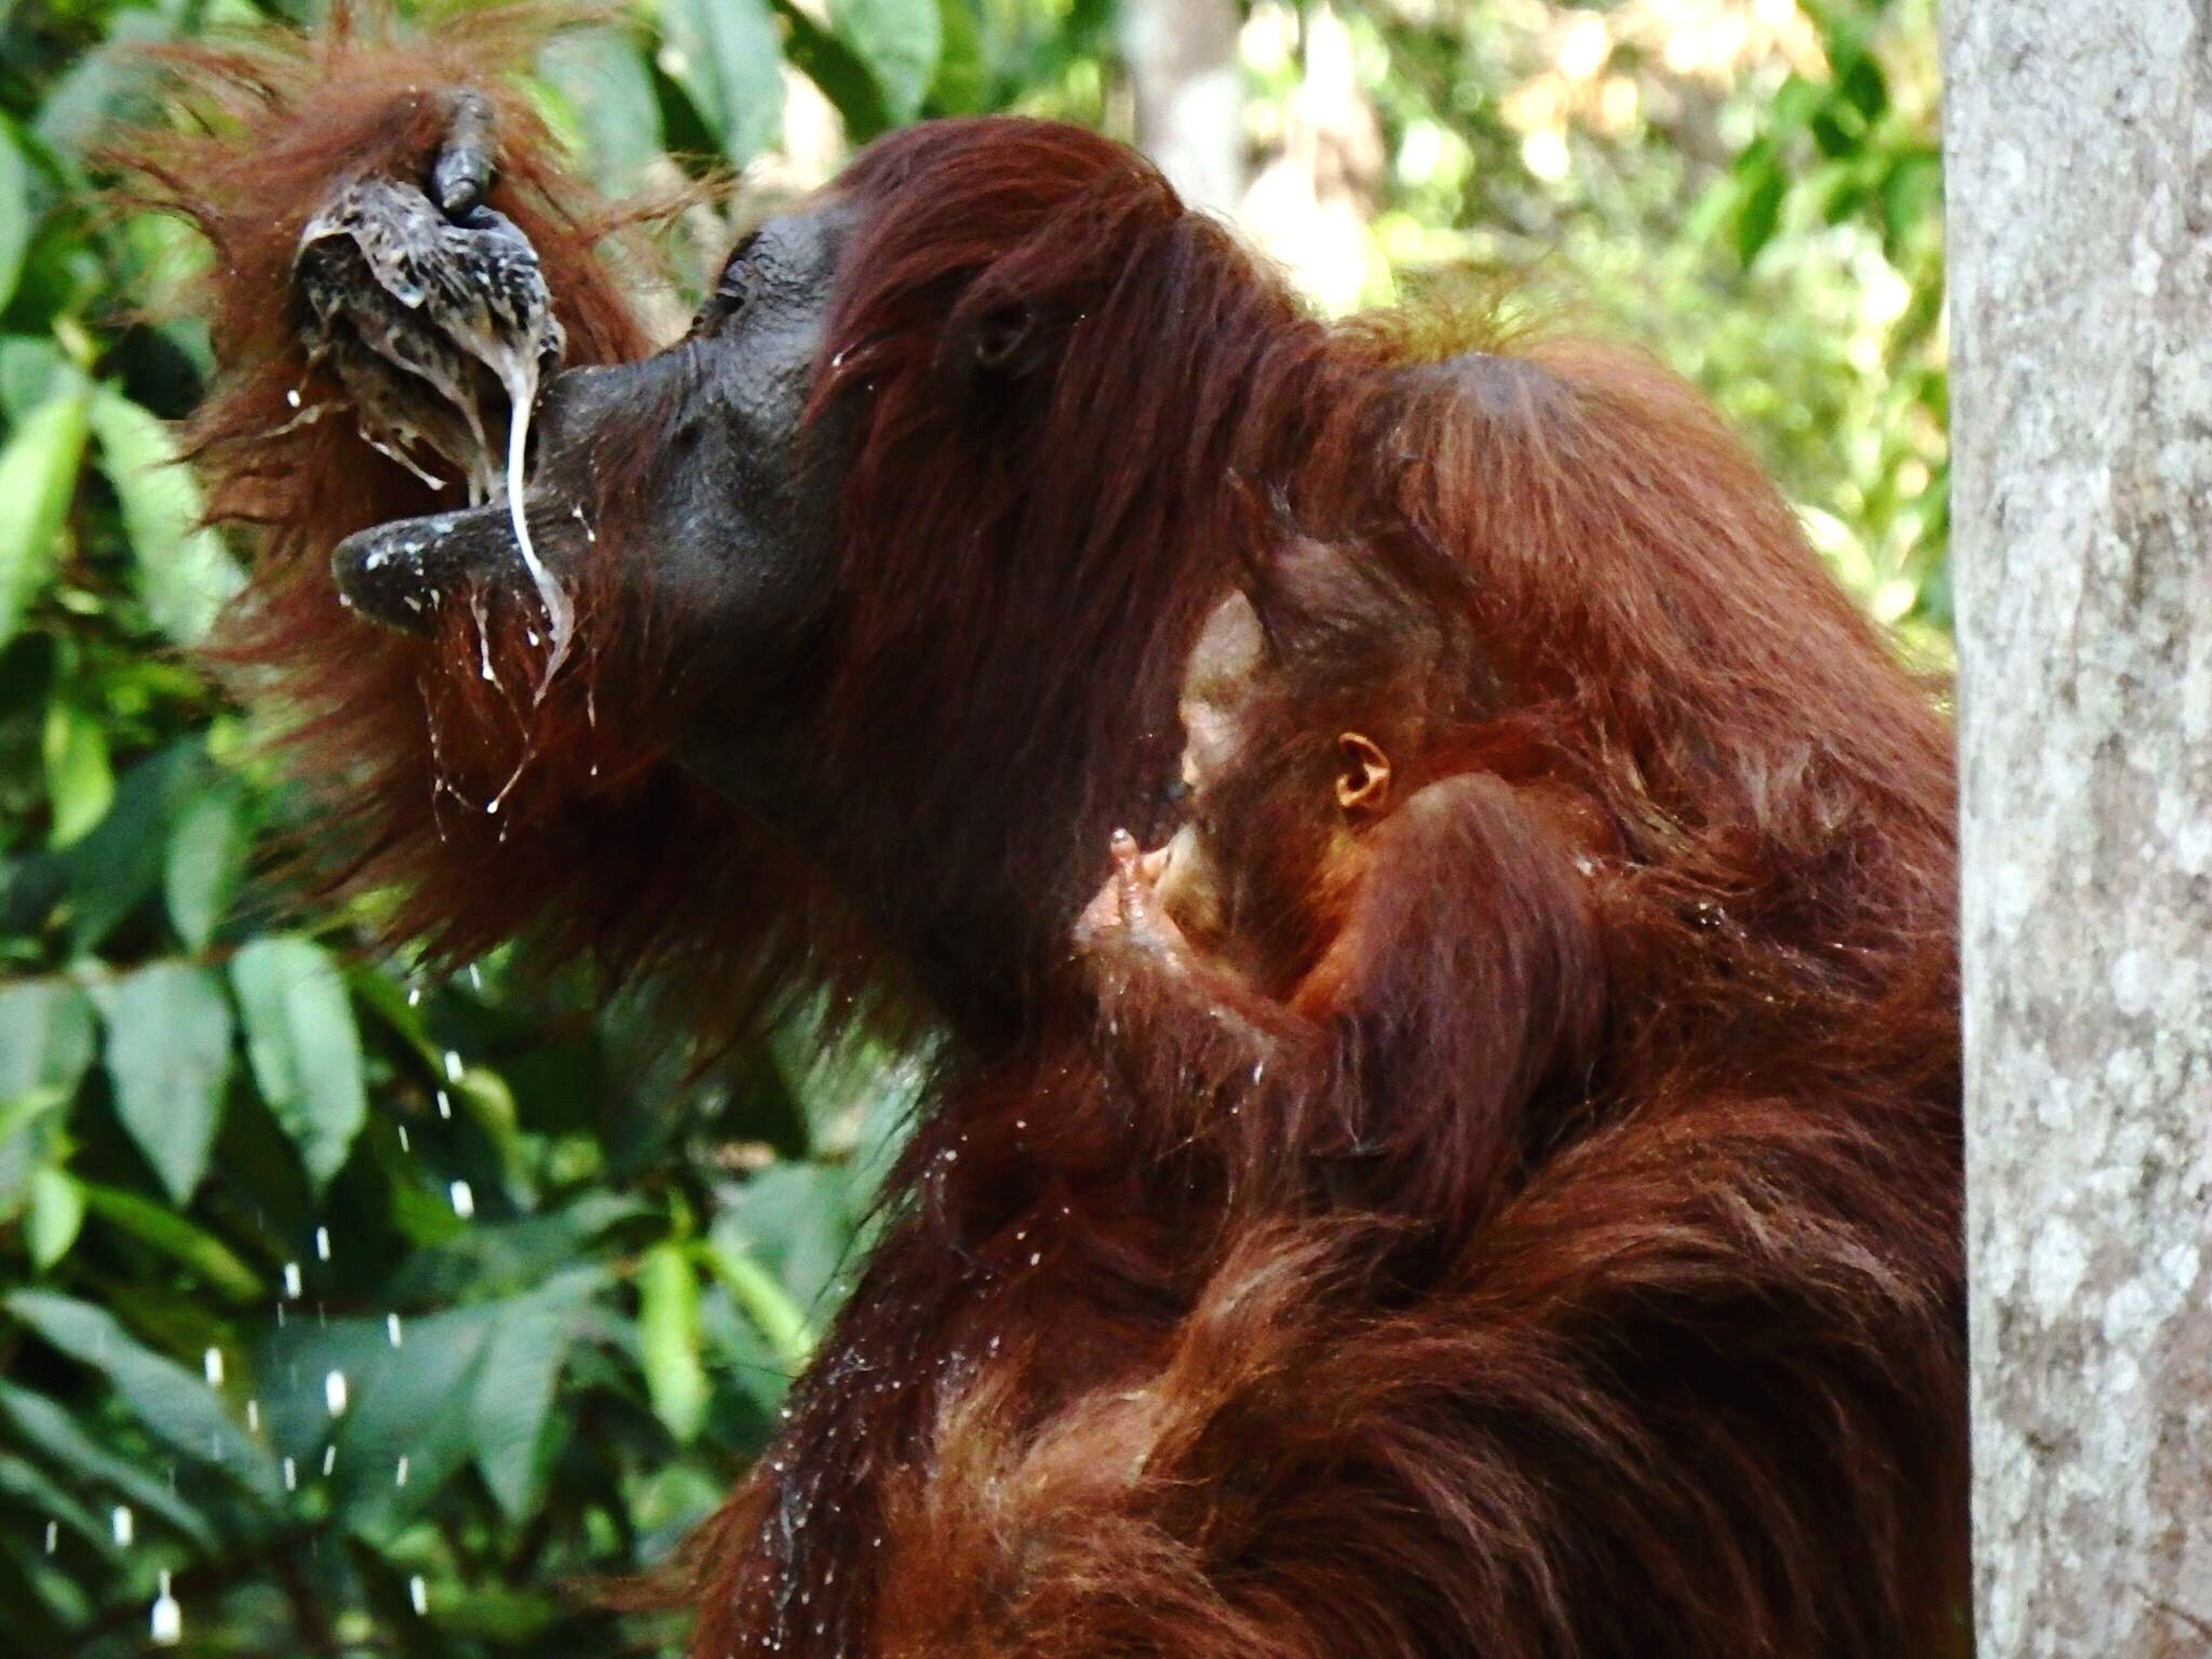 Orangutan Animal Themes Animals In The Wild Animal Wildlife Nature Outdoors Borneo